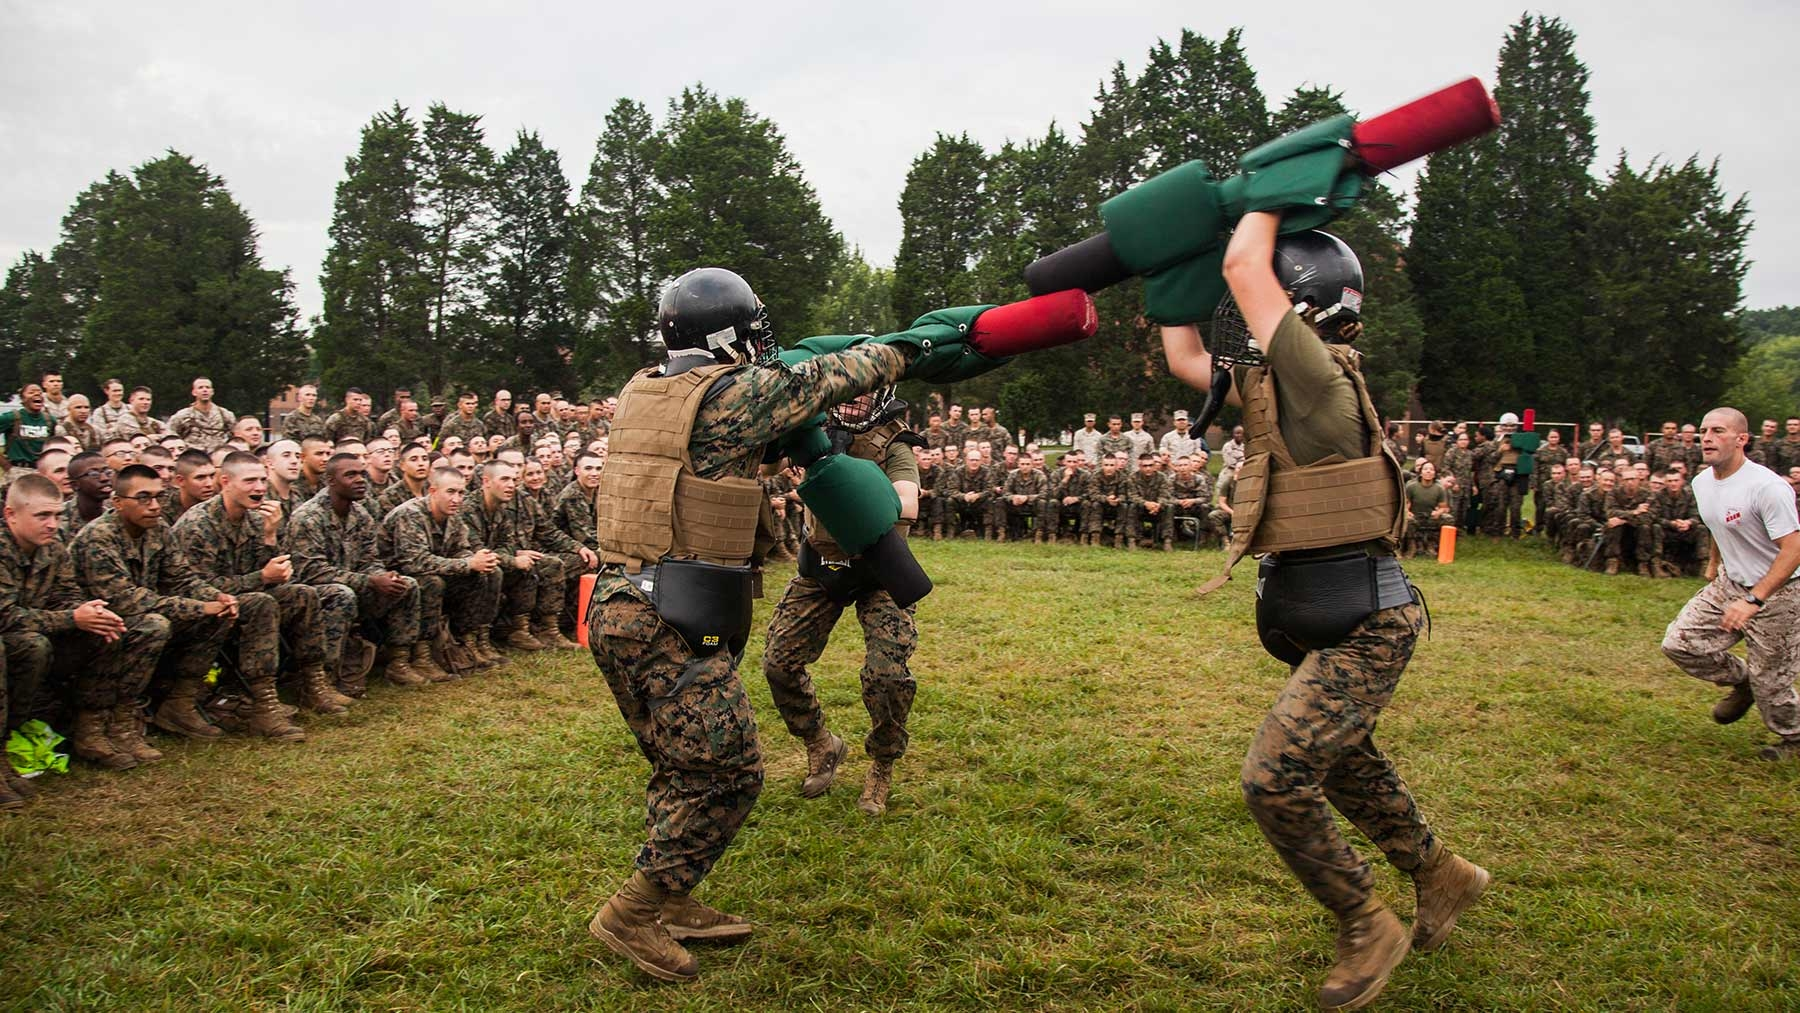 Marine officers jousting